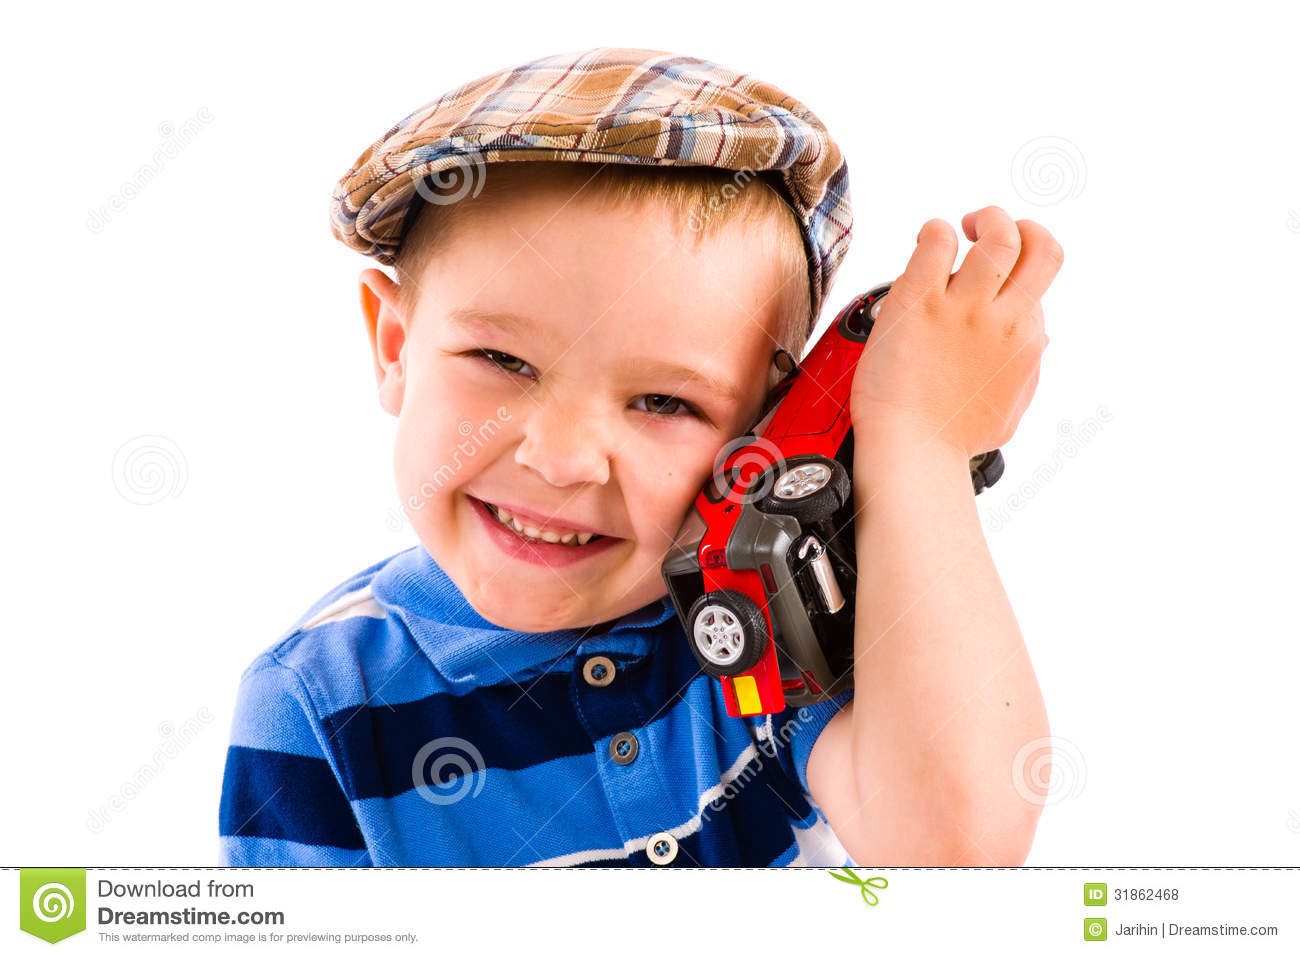 White Boys Toys : Boy and toy car stock photo image of child playing